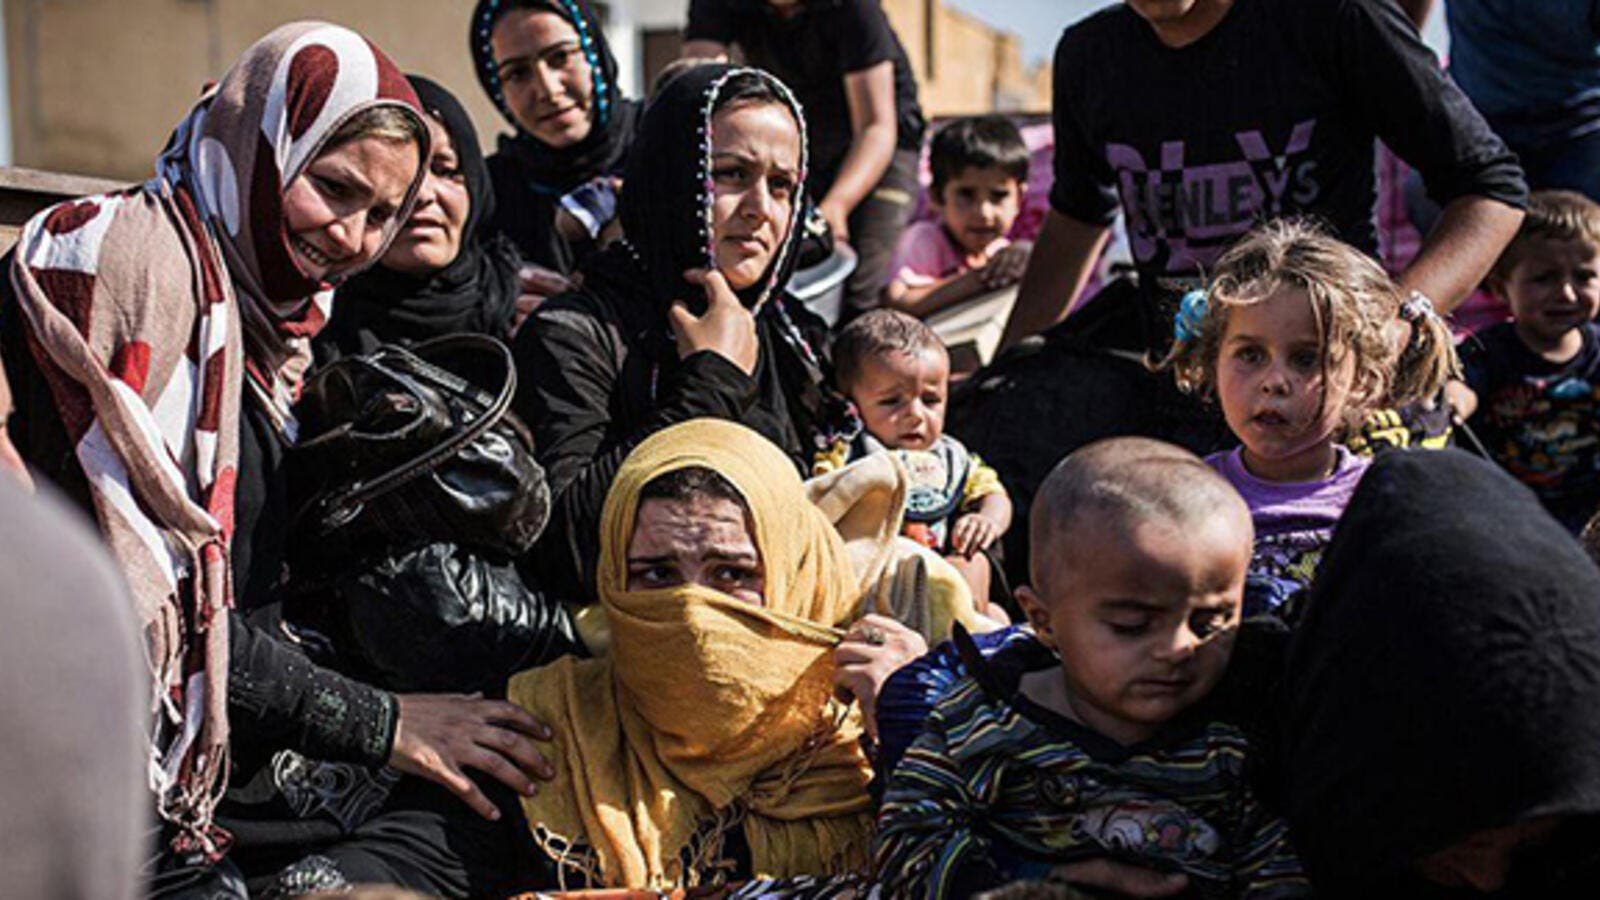 Syrian refugees from Raqqa governorate cross the Syria-Turkey border fleeing Isis in this file photo dated June 22 2015. (AFP)